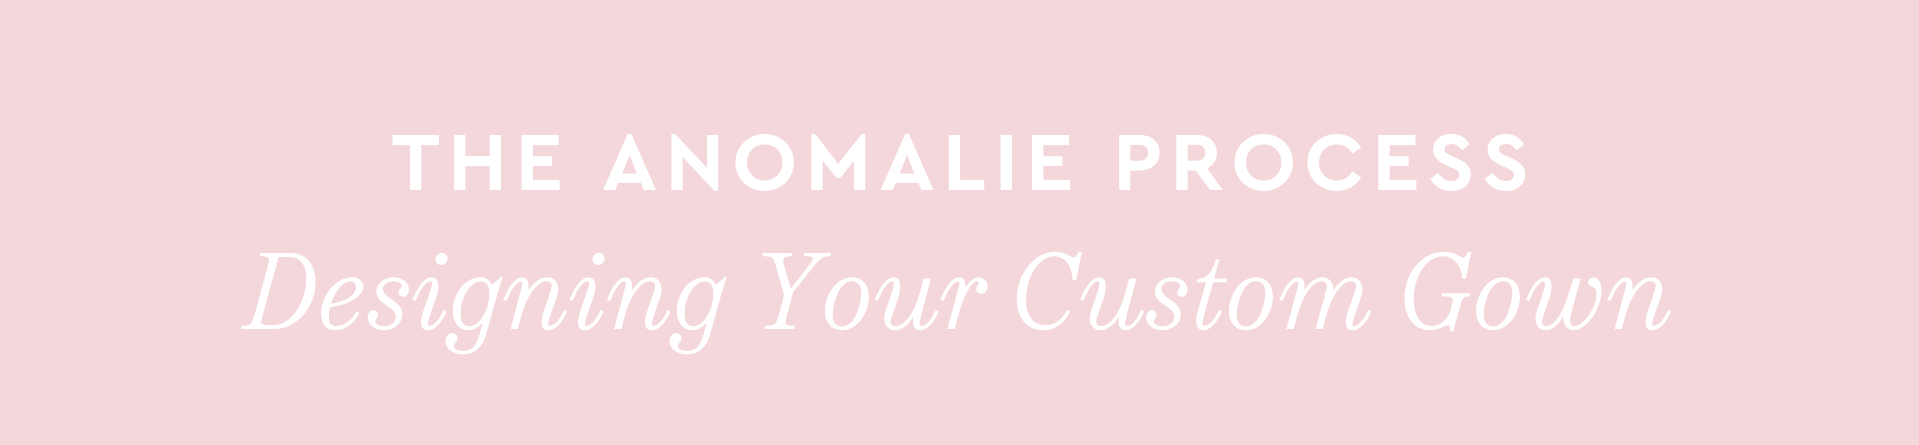 The Anomalie Process: Designing Your Custom Gown.